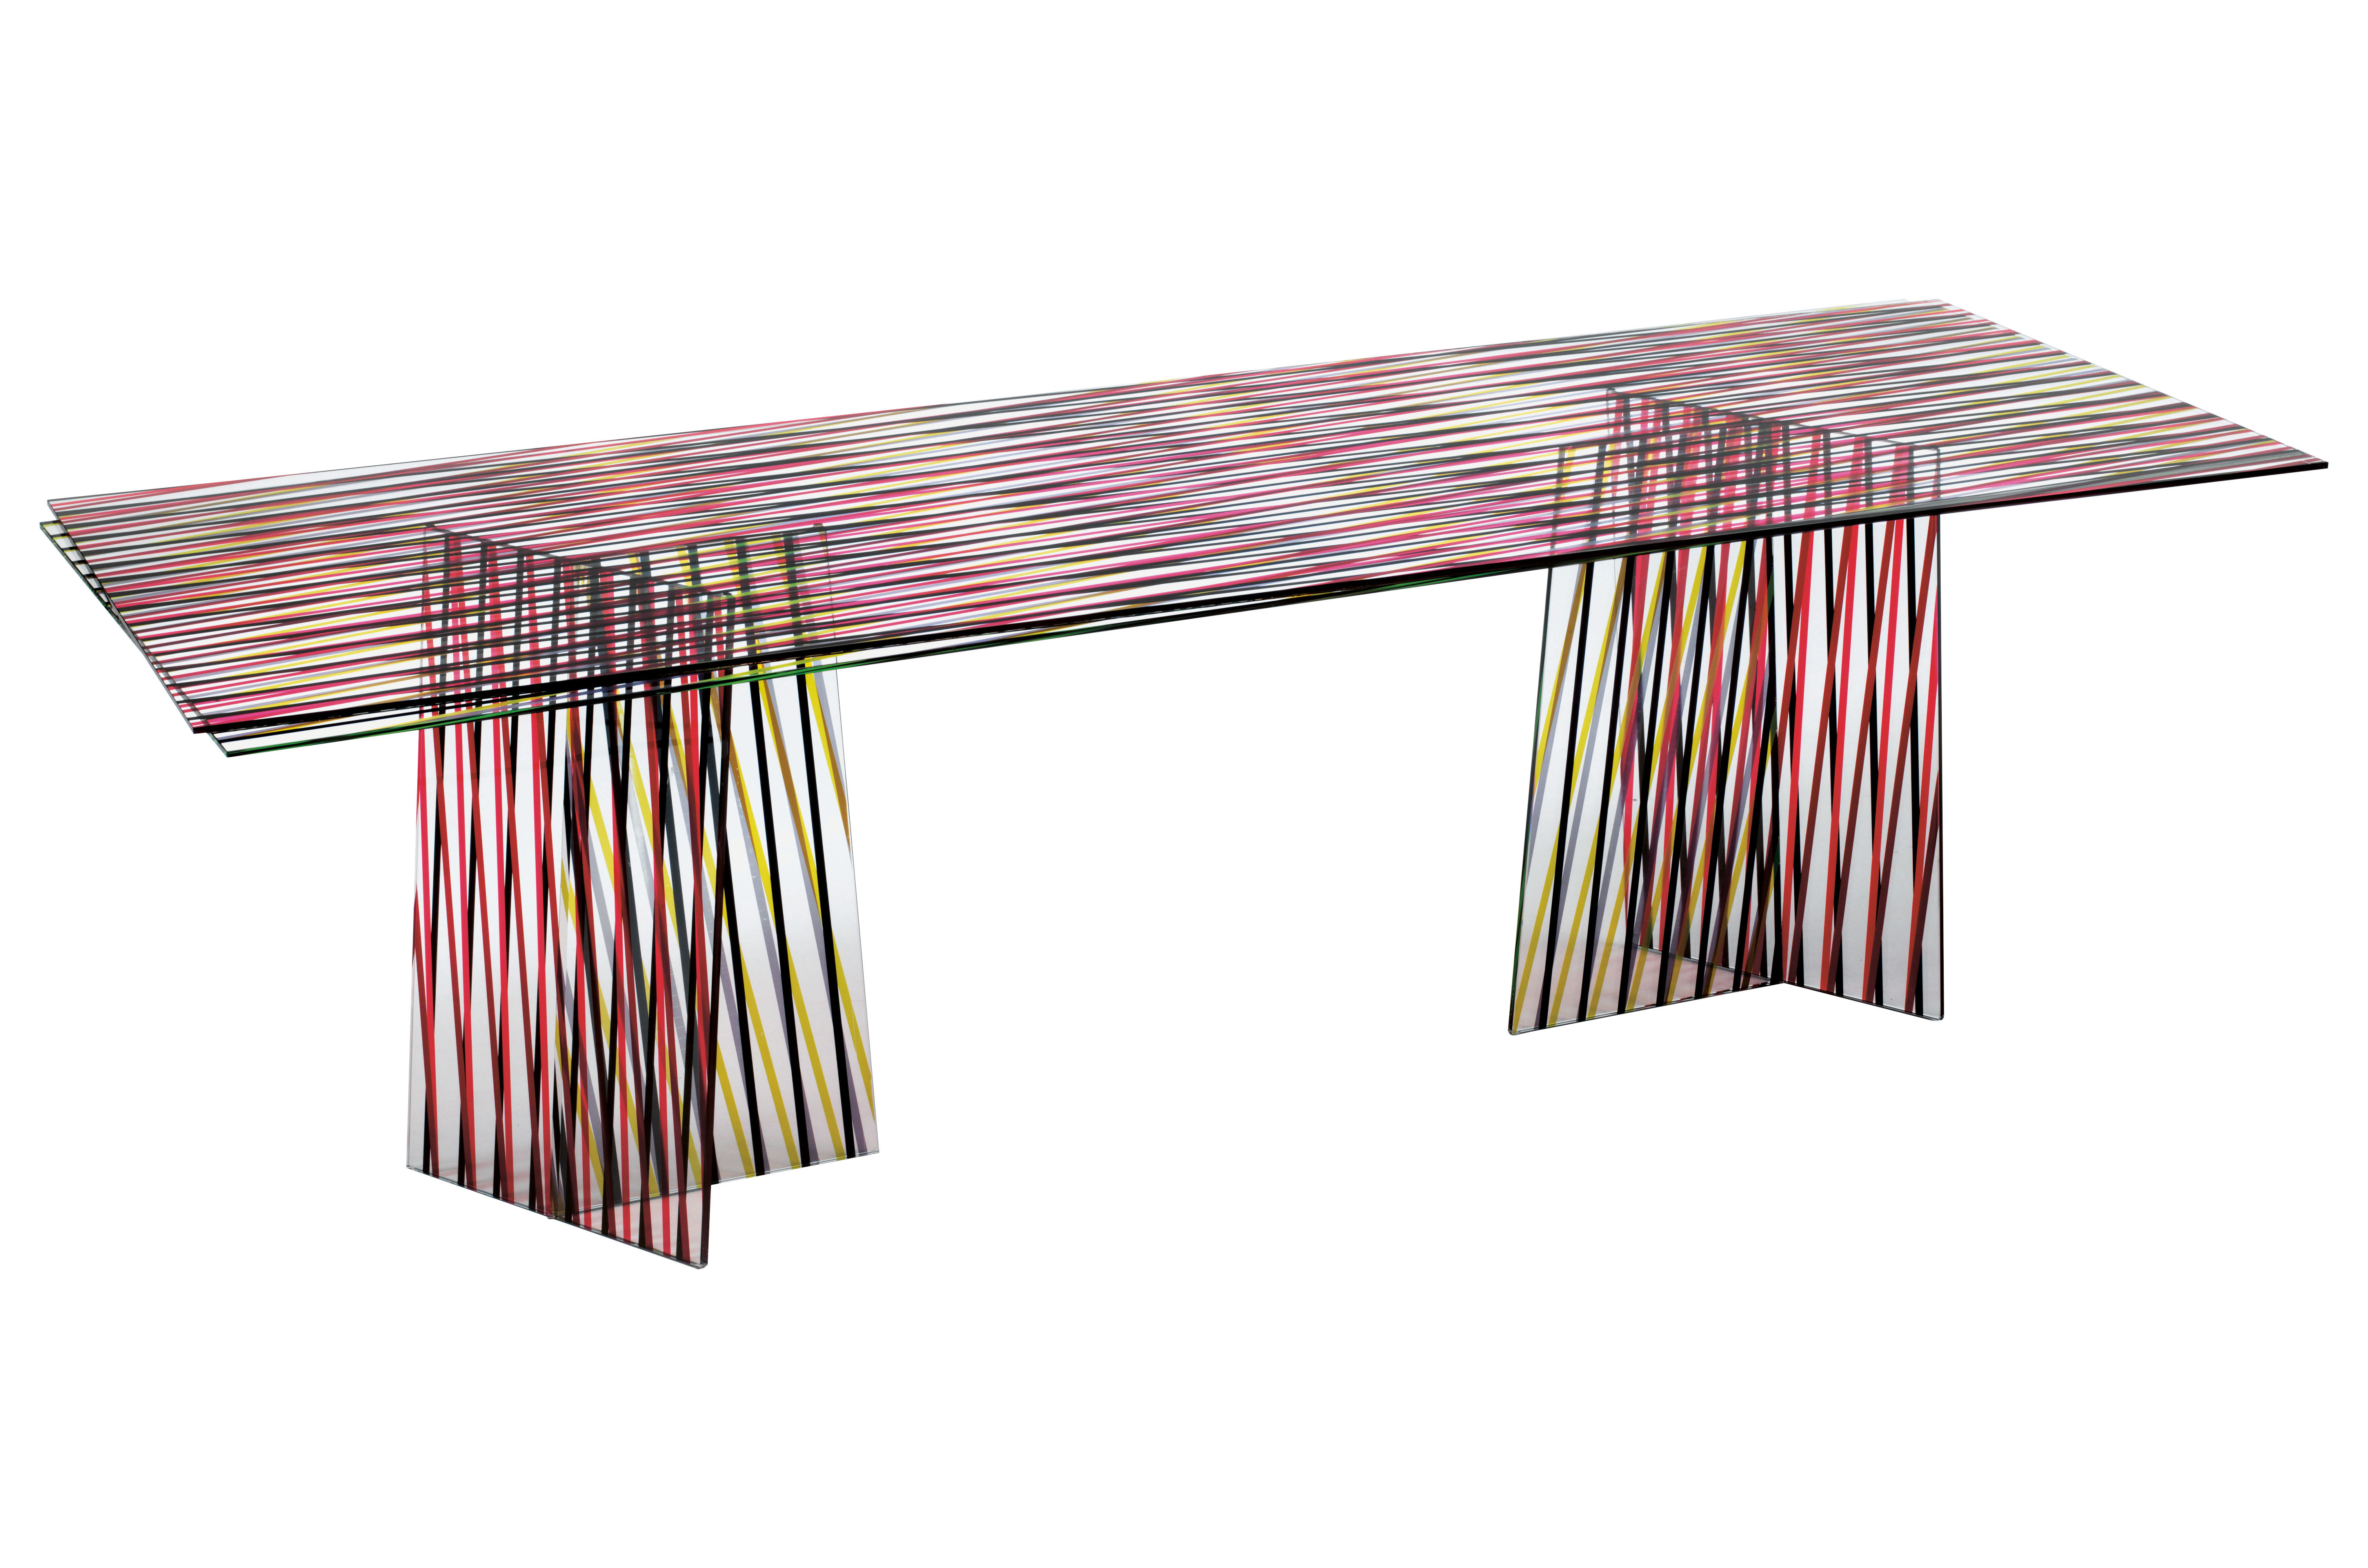 Mobilier - Tables - Table rectangulaire Crossing / 200 x 92 cm - Glas Italia - Rayures larges - Tons rouges - Verre